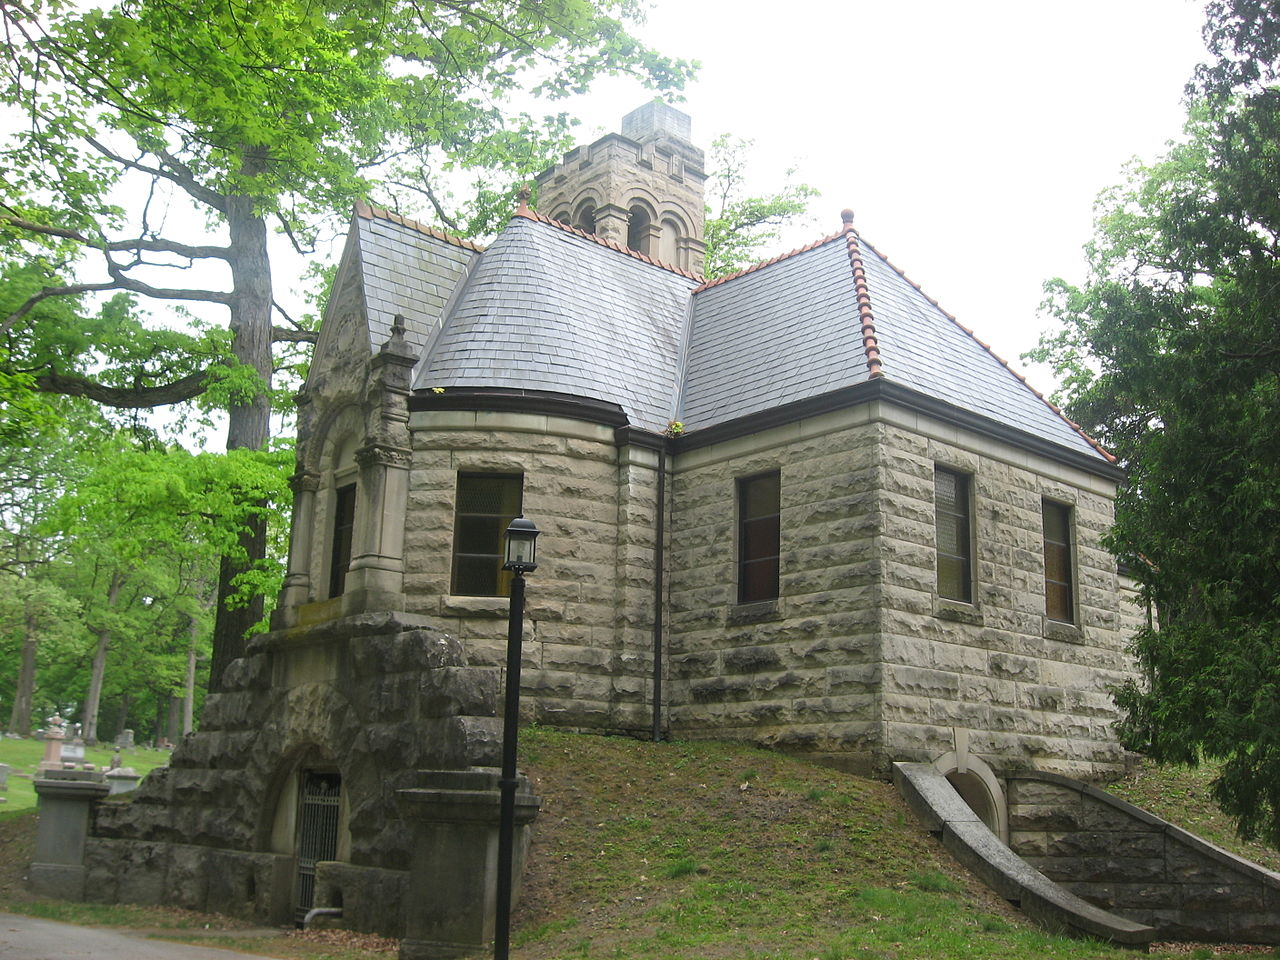 Lindenwood Cemetery was founded in 1859 and was designed to be a park-like setting. This chapel was built in 1895.